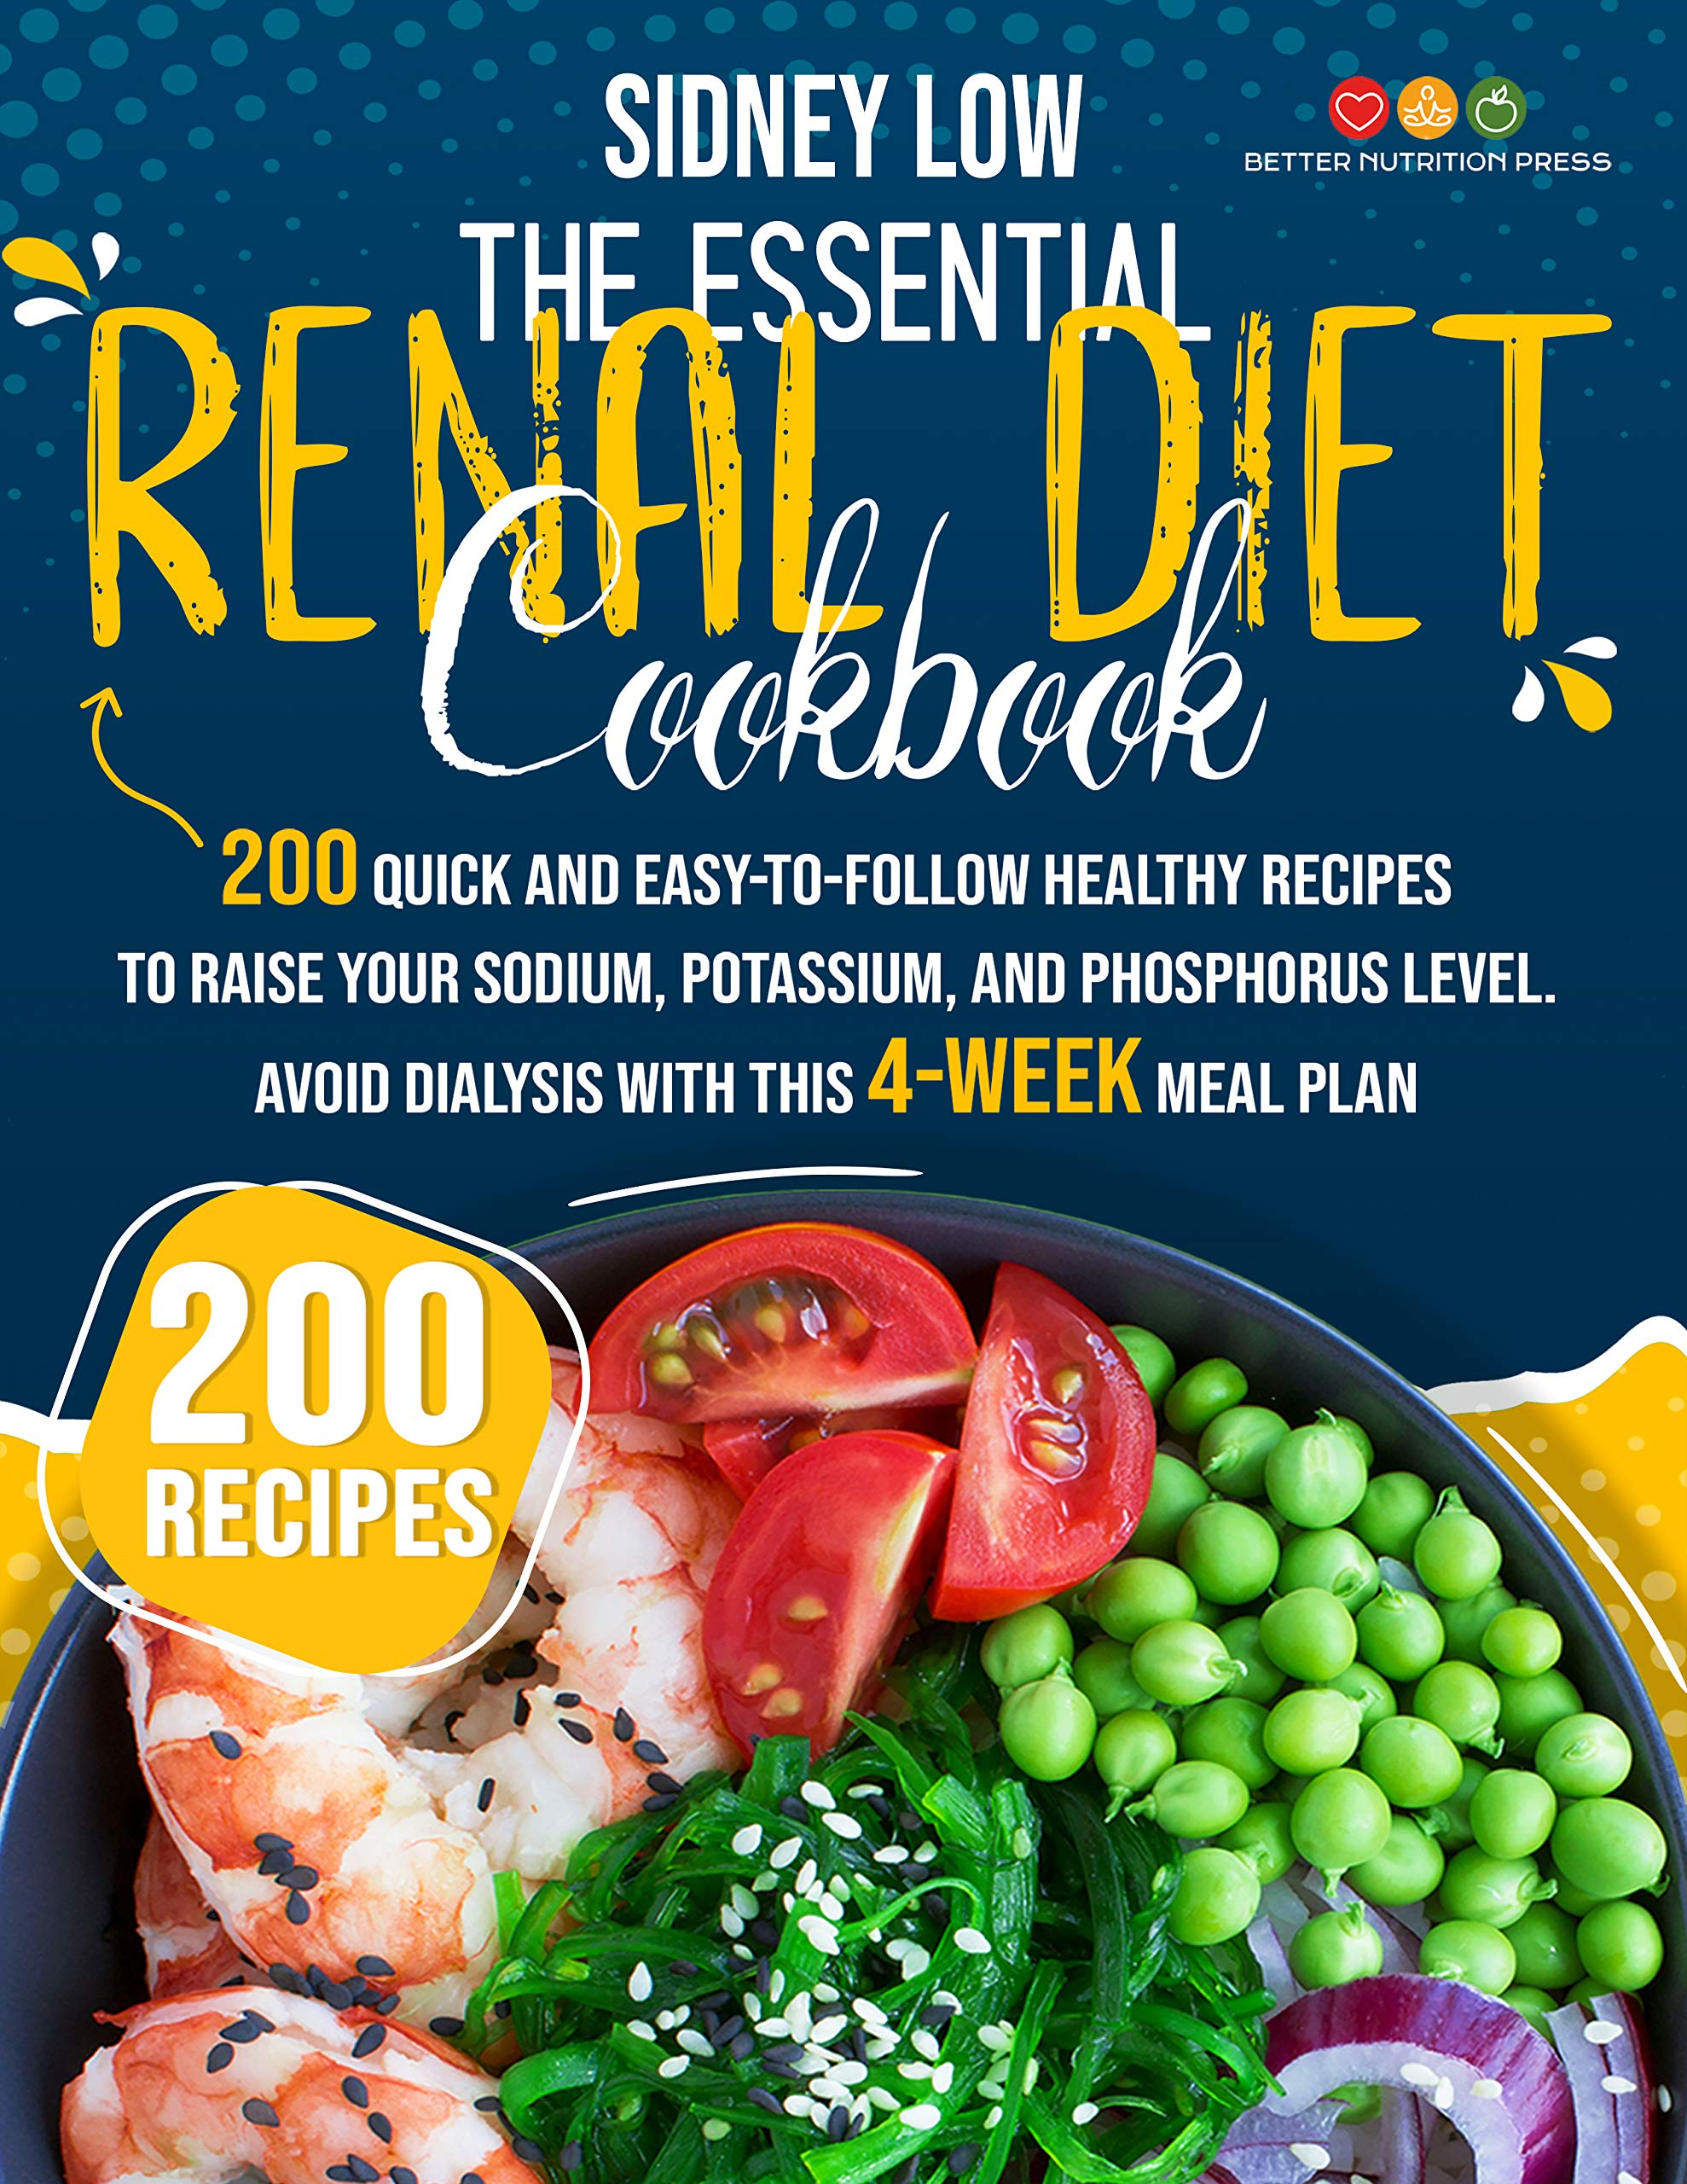 THE ESSENTIAL RENAL DIET COOKBOOK: 201 QUICK, HEALTHY, AND EASY-TO-FOLLOW RECIPES TO RAISE YOUR SODIUM, POTASSIUM, AND PHOSPHORUS LEVEL. AVOID DIALYSIS WITH THIS 4-WEEK MEAL PLAN